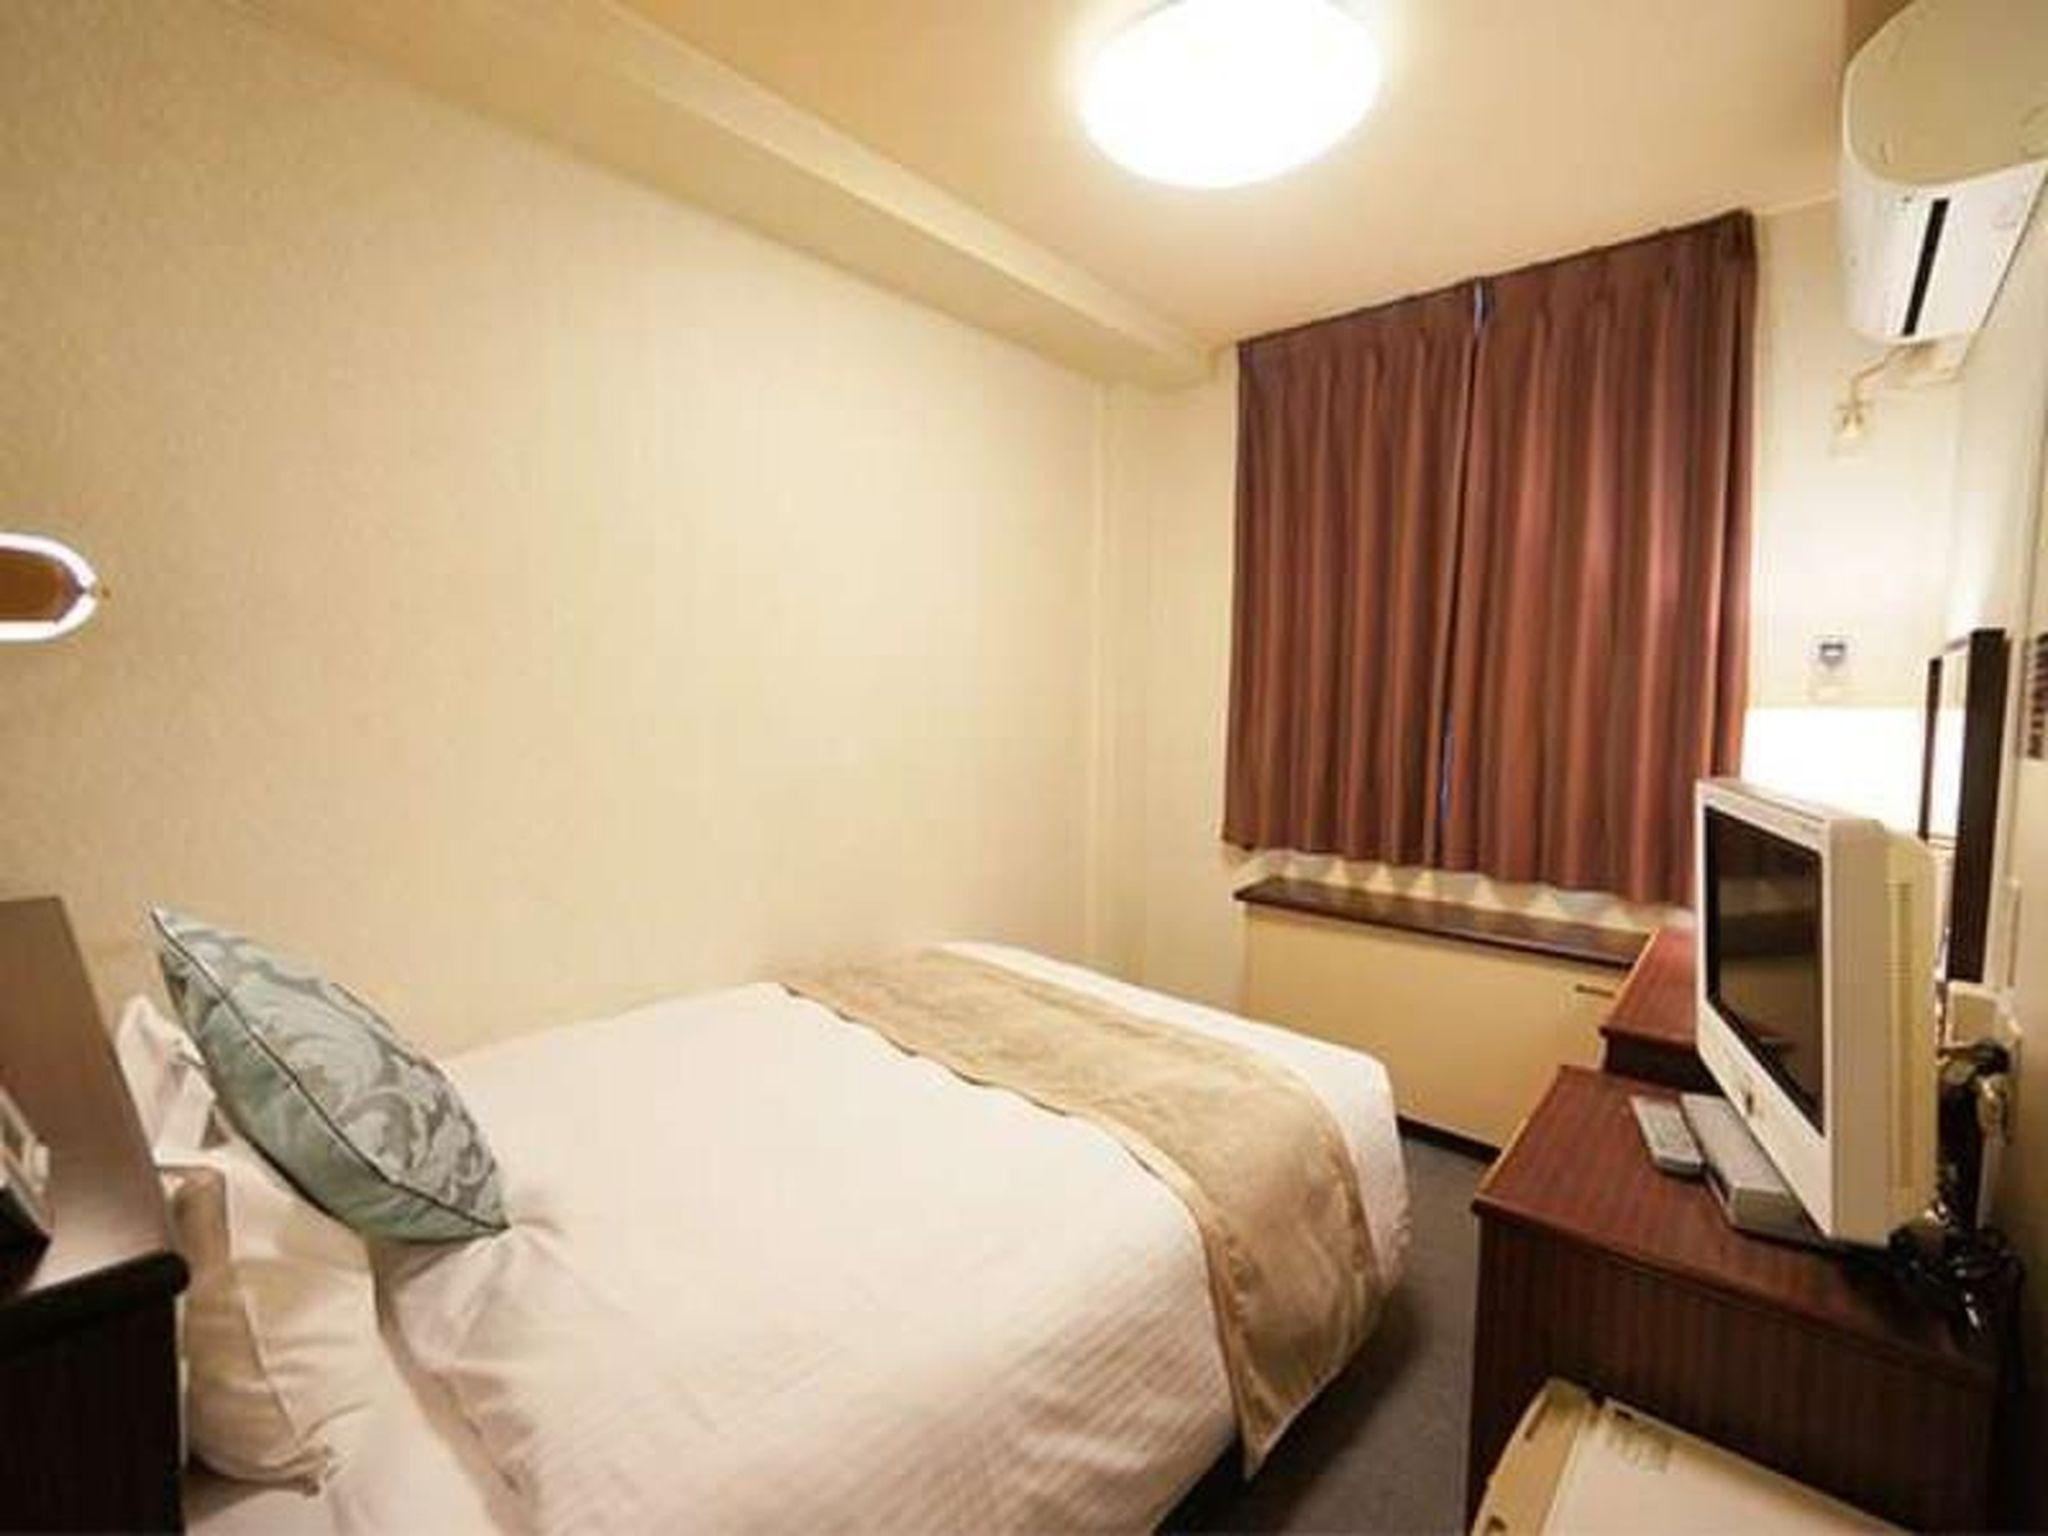 Kamar Economy Double – Bebas Asap Rokok (Economy Double Room - Non-Smoking)